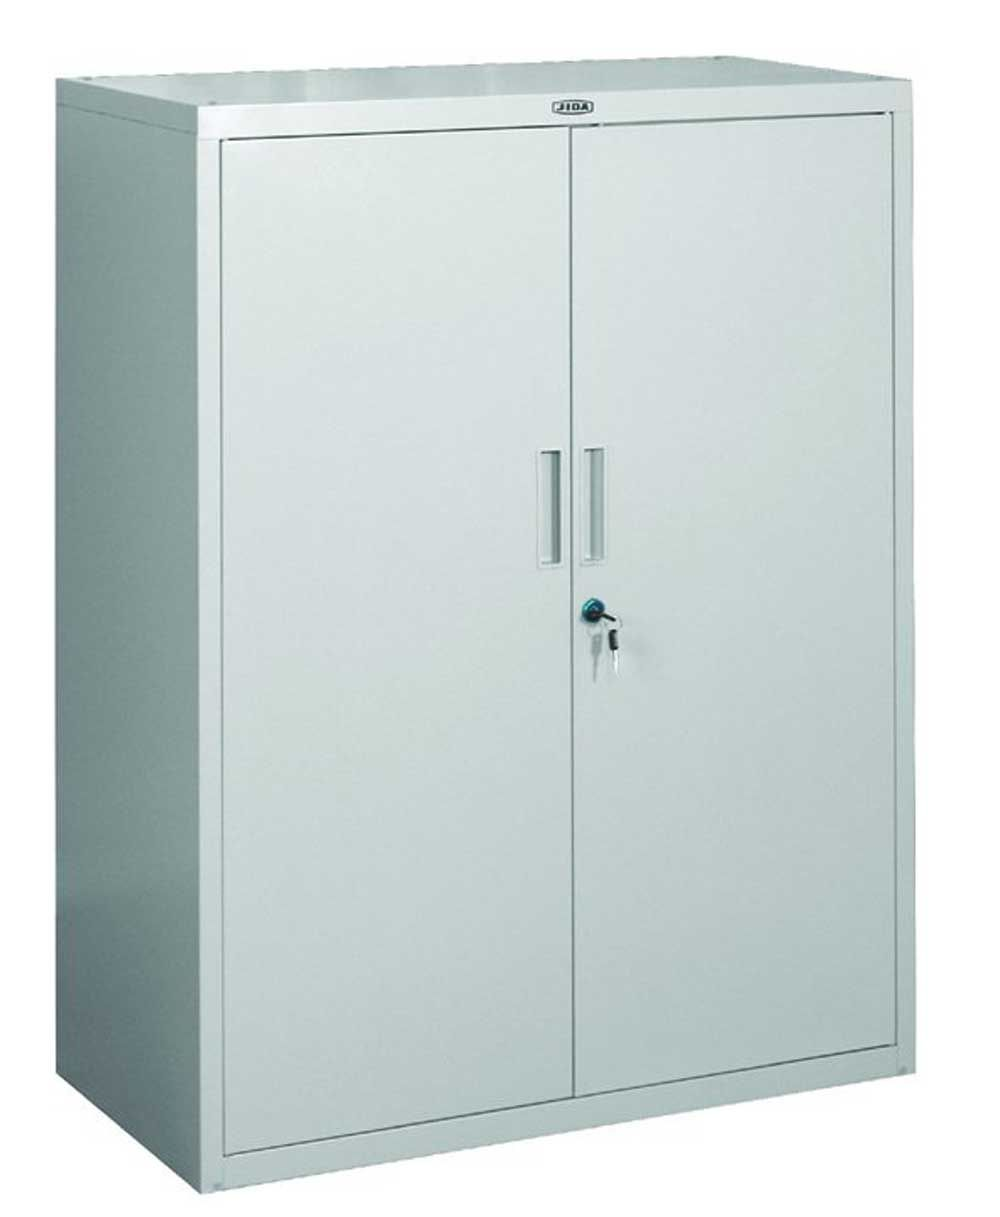 Steel Two Doors Lockable Filing Cabinet Filing Cabinet Filing Cabinet Storage Cabinet Doors